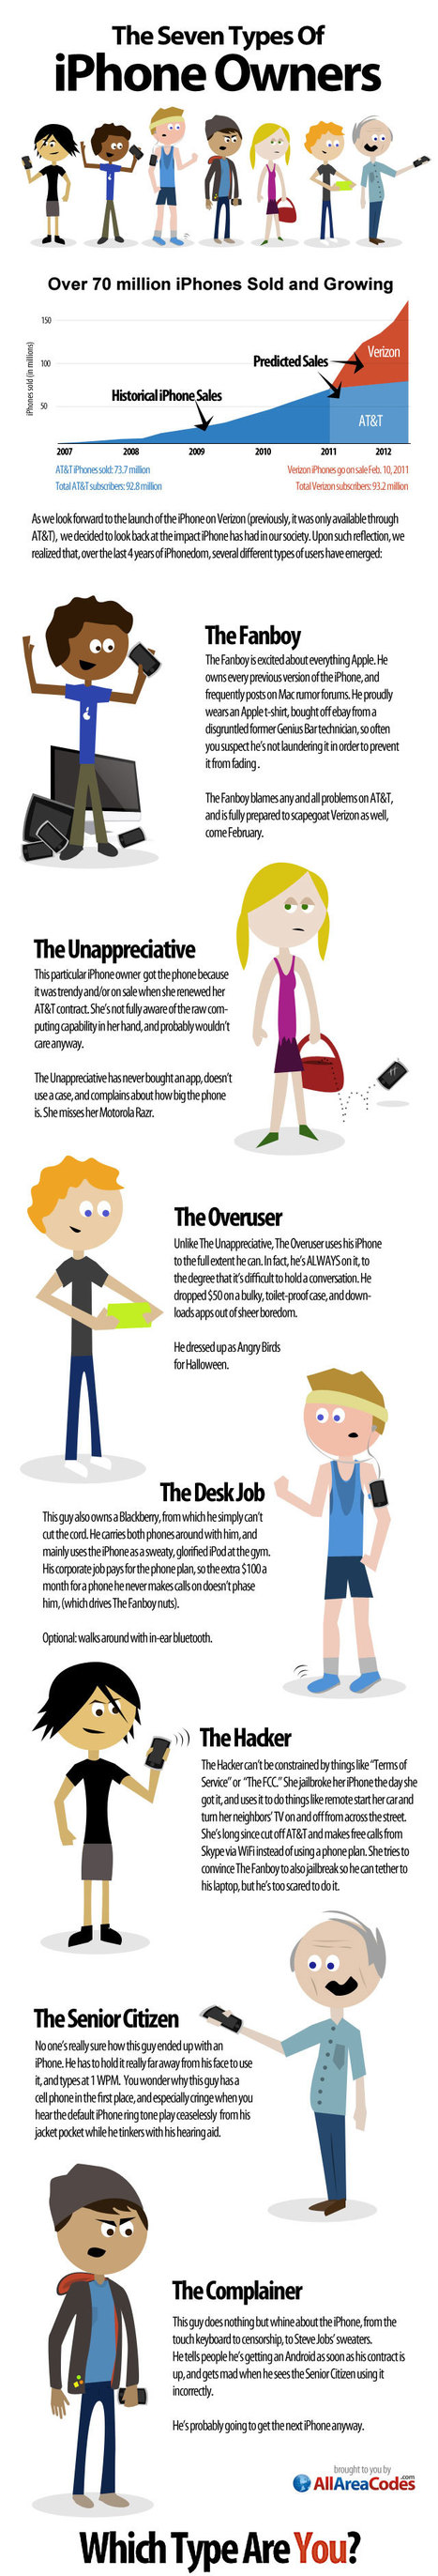 Seven Types of iPhone Users @The_Infographic | All Technology Buzz | Scoop.it